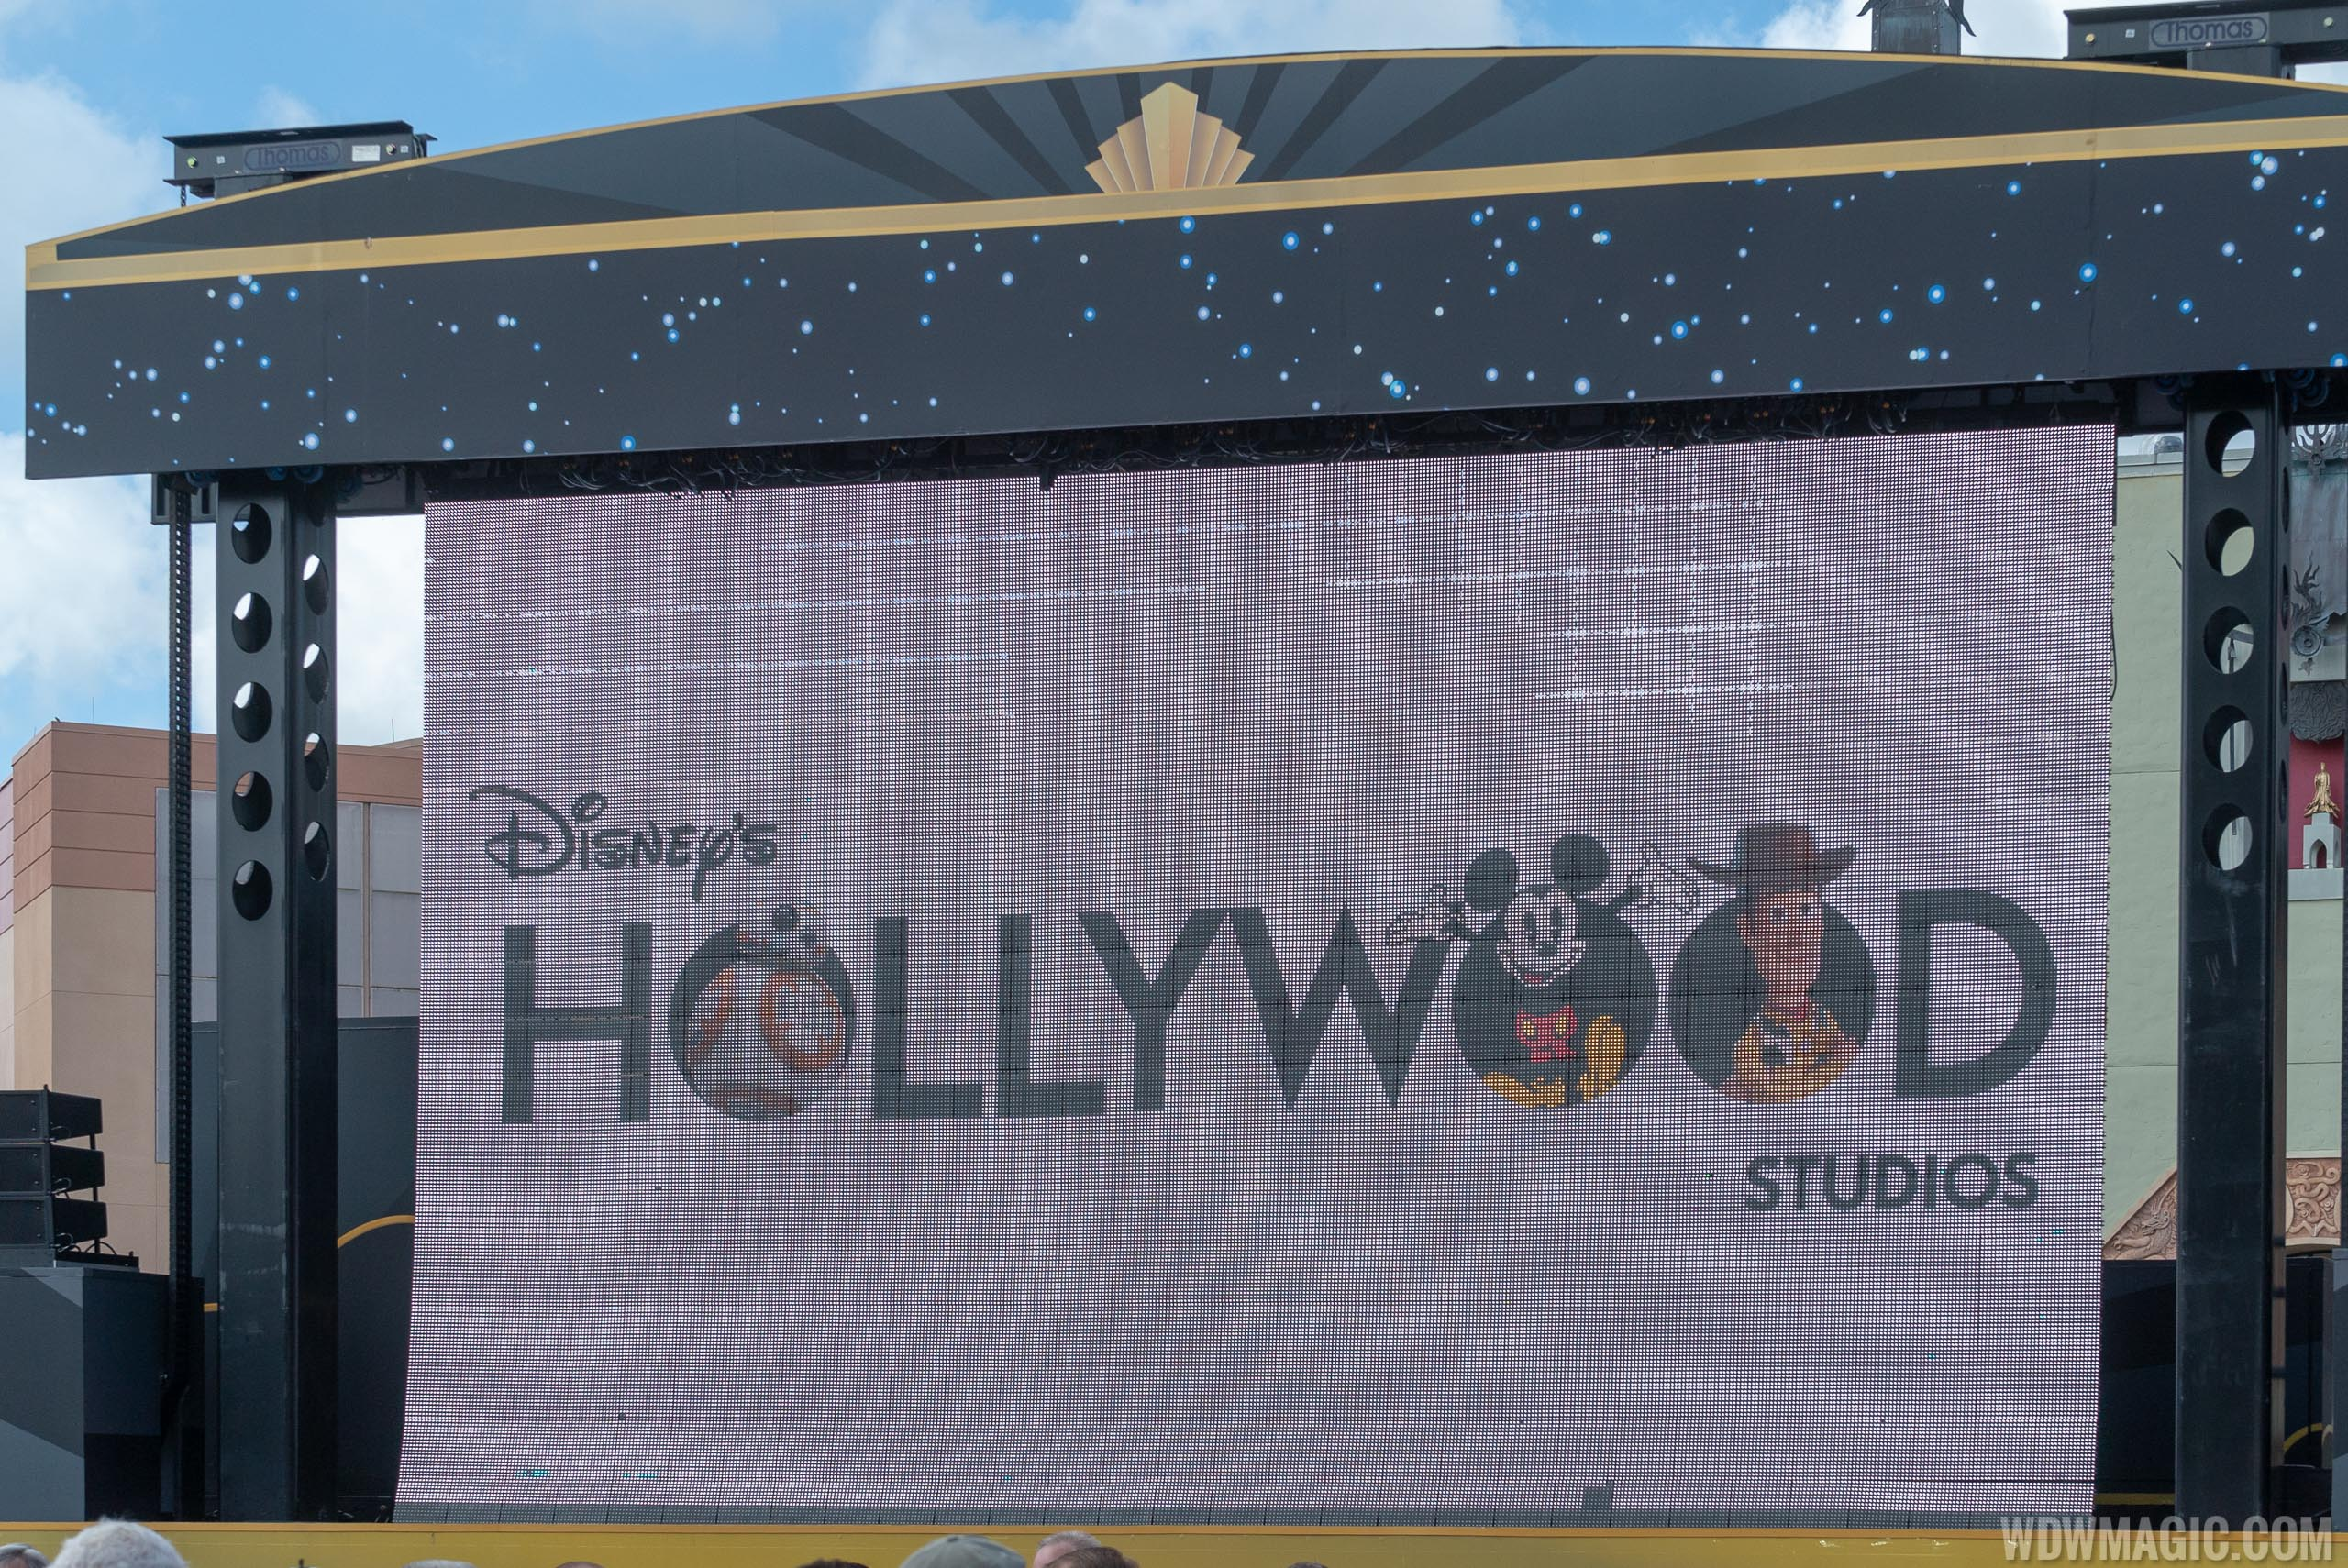 New logo for Disney's Hollywood Studios on-screen during the 30th anniversary moment today